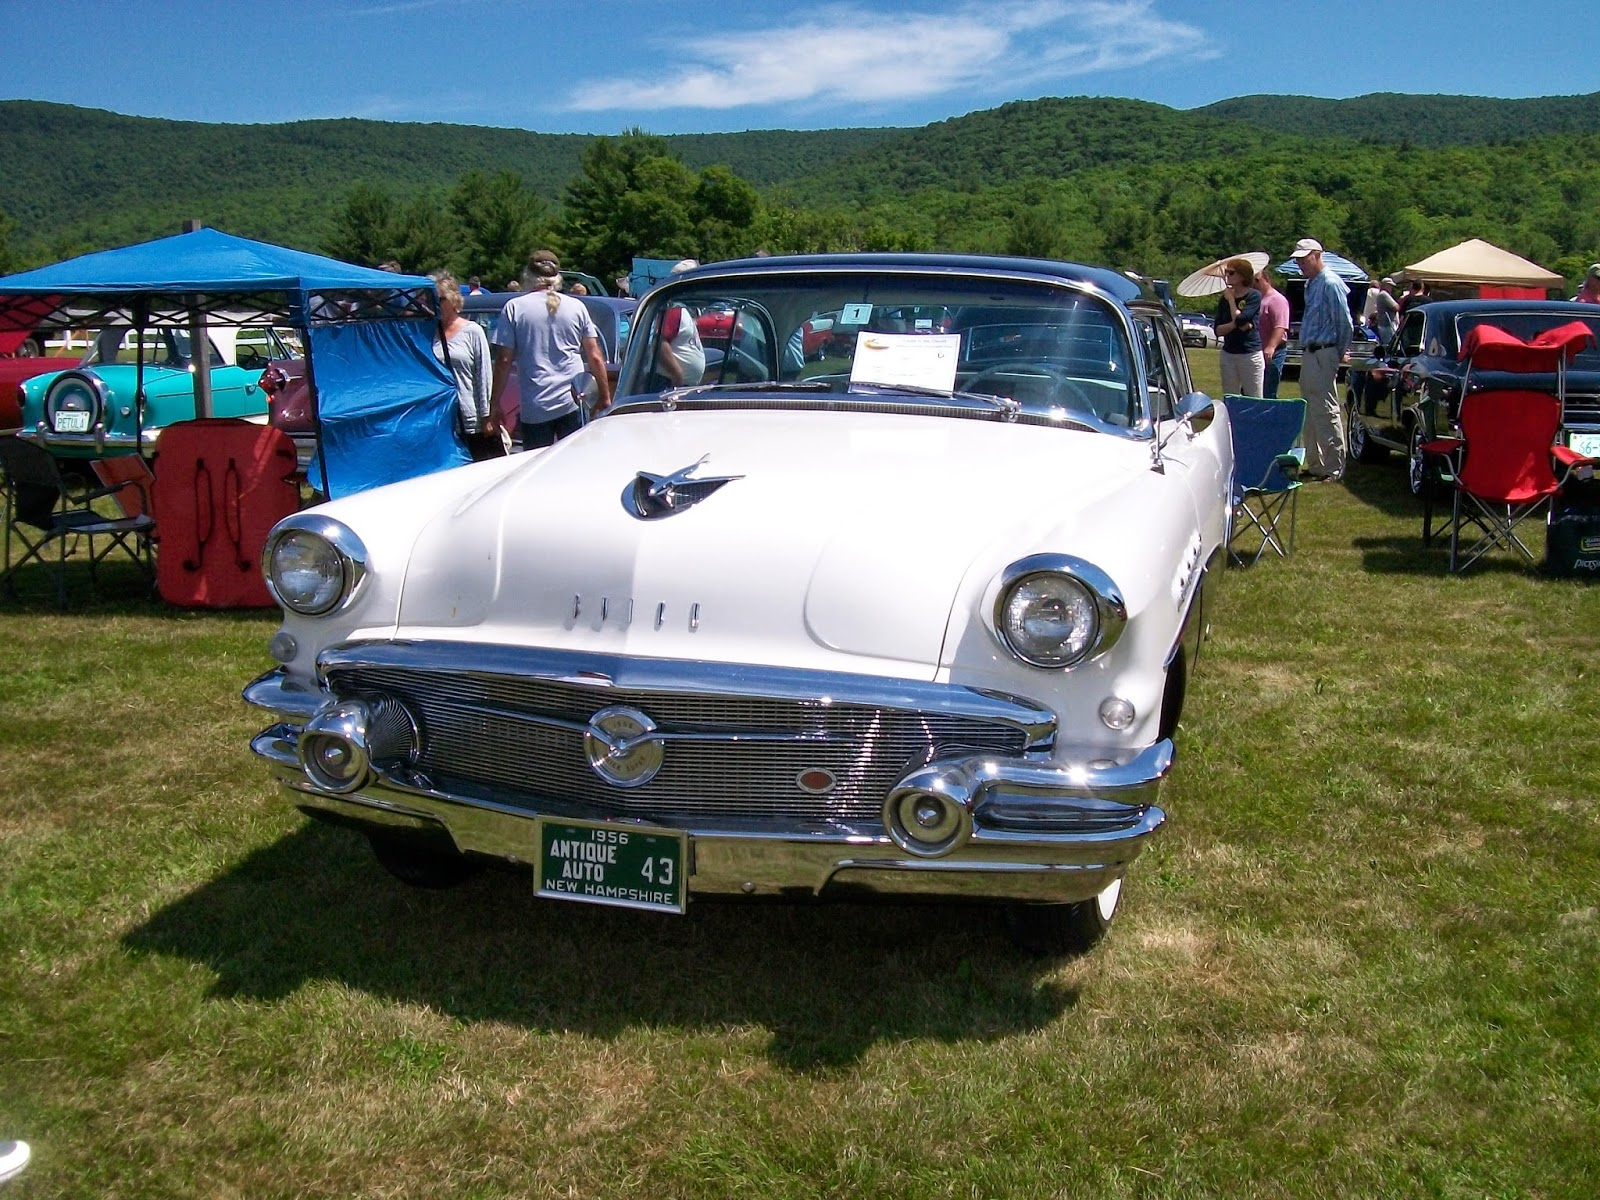 Moultonboro Speaks: Antique and Classic Car Show Castle in the Clouds